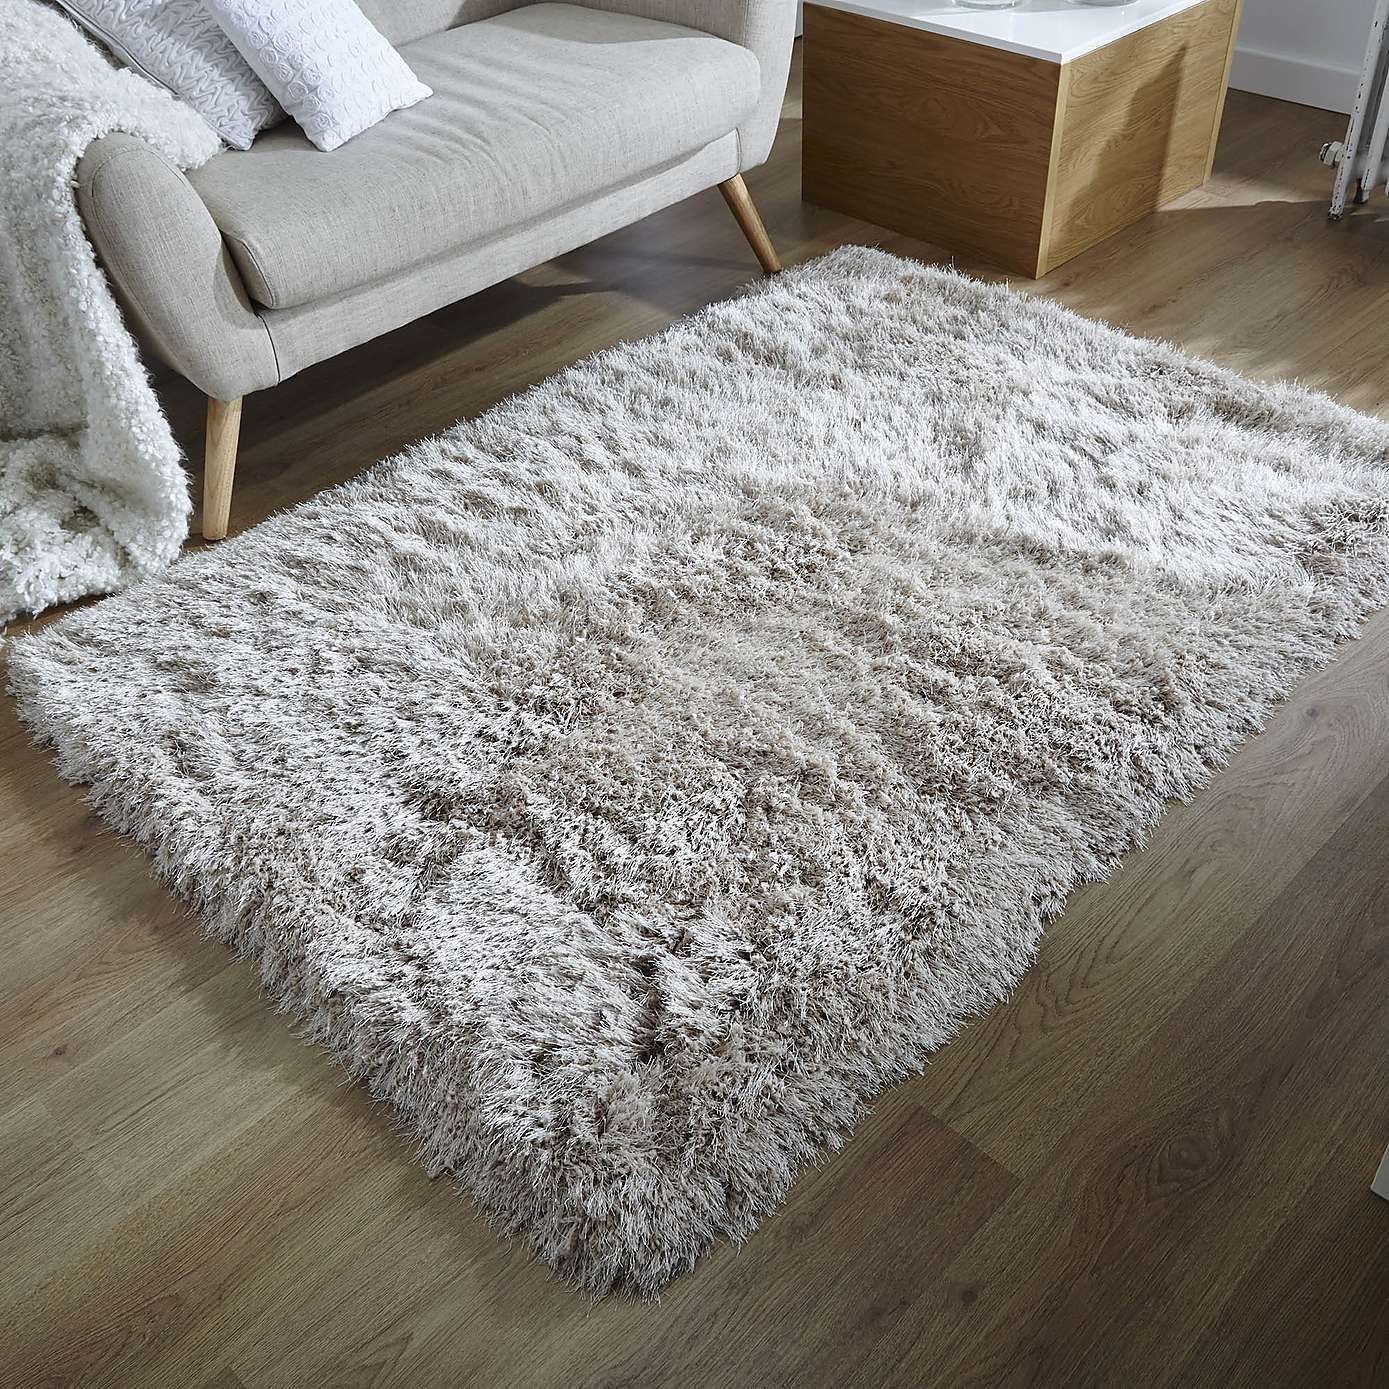 Gem Sparkle Natural Shaggy Rug Rugs In Living Room Living Room Color Schemes Room Color Schemes